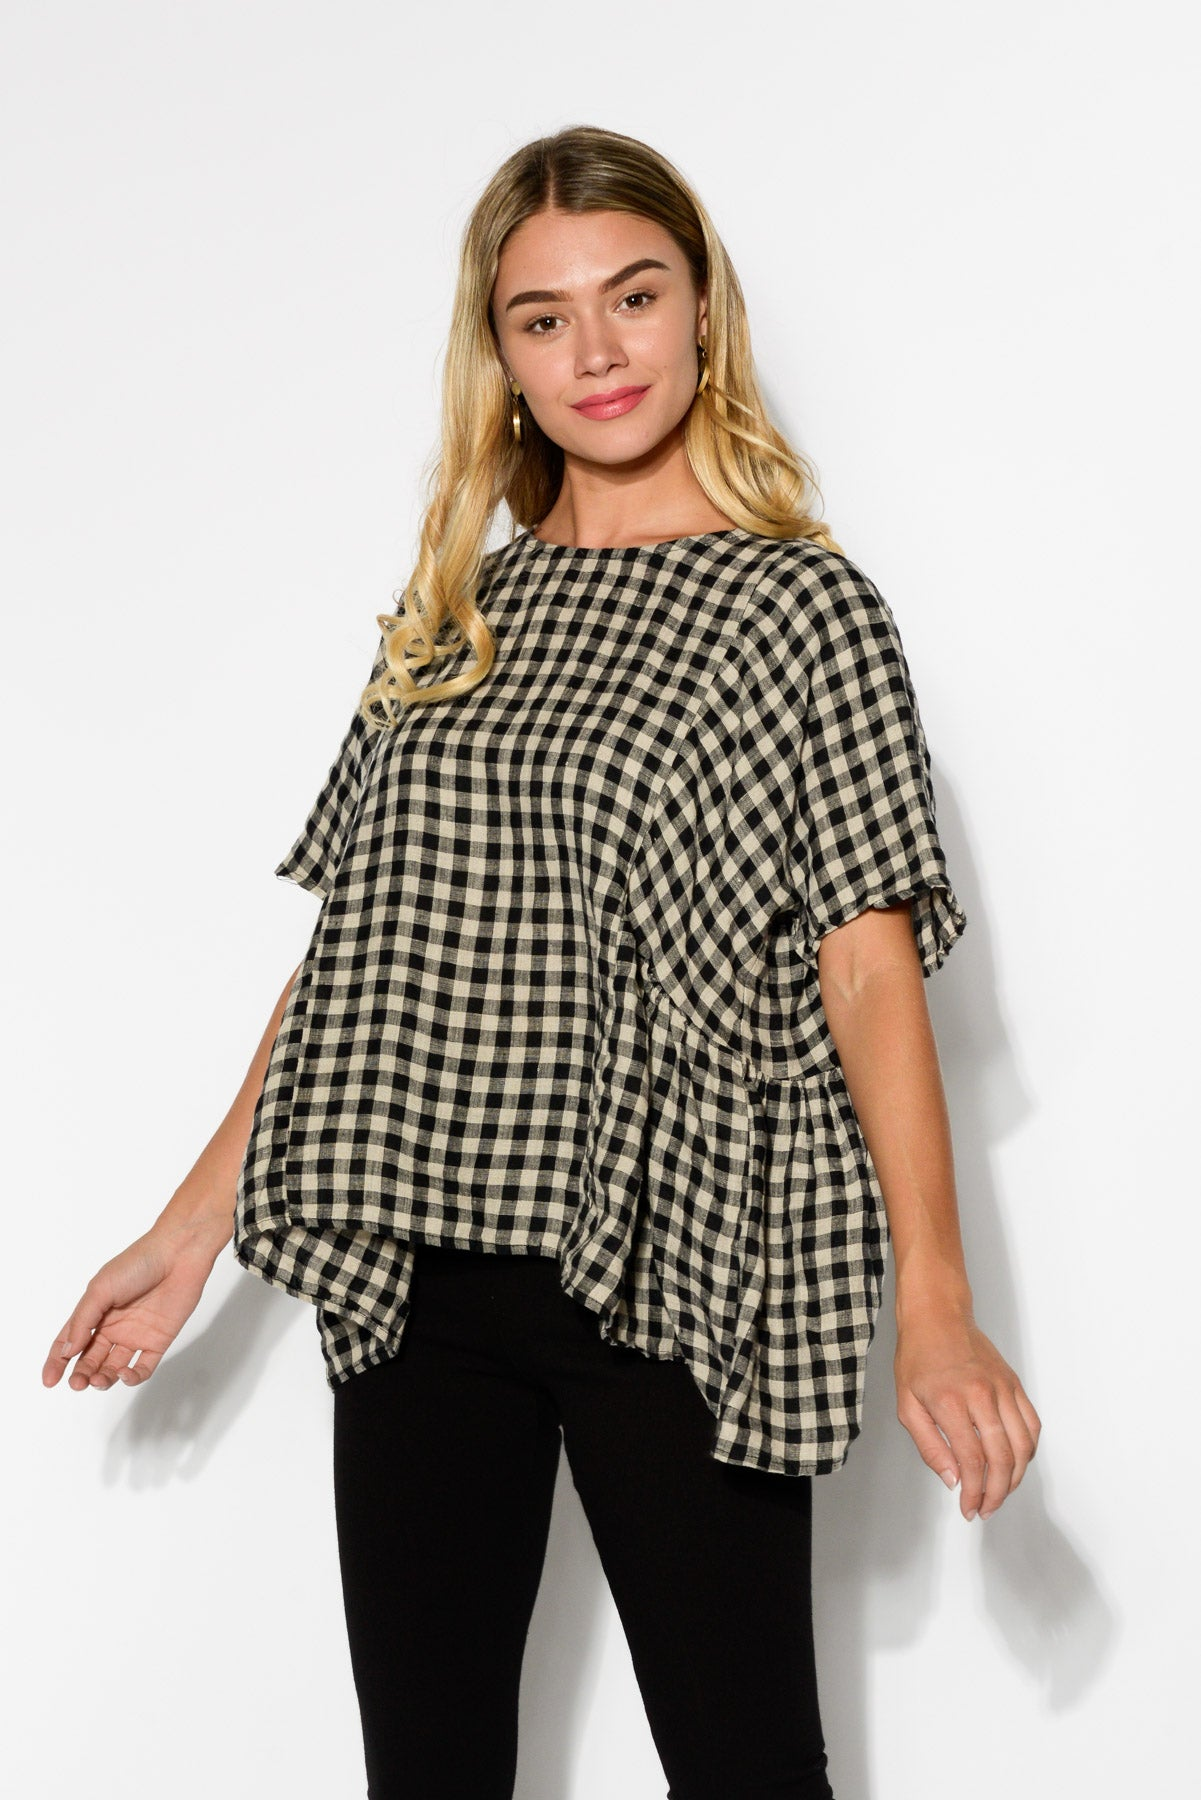 Mia Linen Beige Checked Top - Blue Bungalow